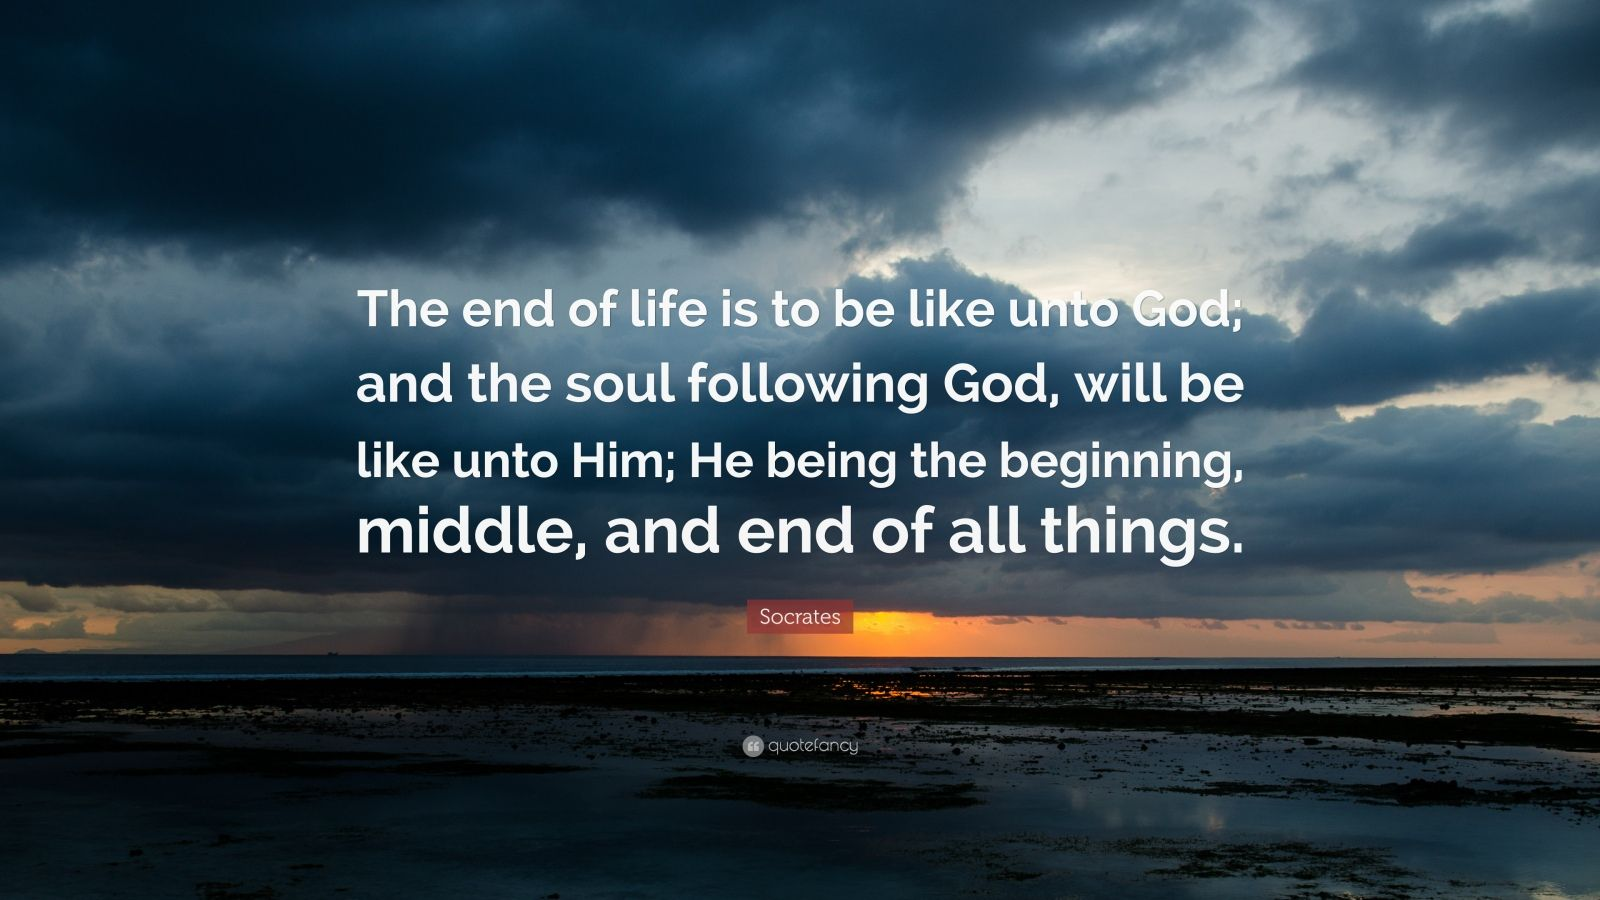 Osho Hd Wallpaper Socrates Quote The End Of Life Is To Be Like Unto God